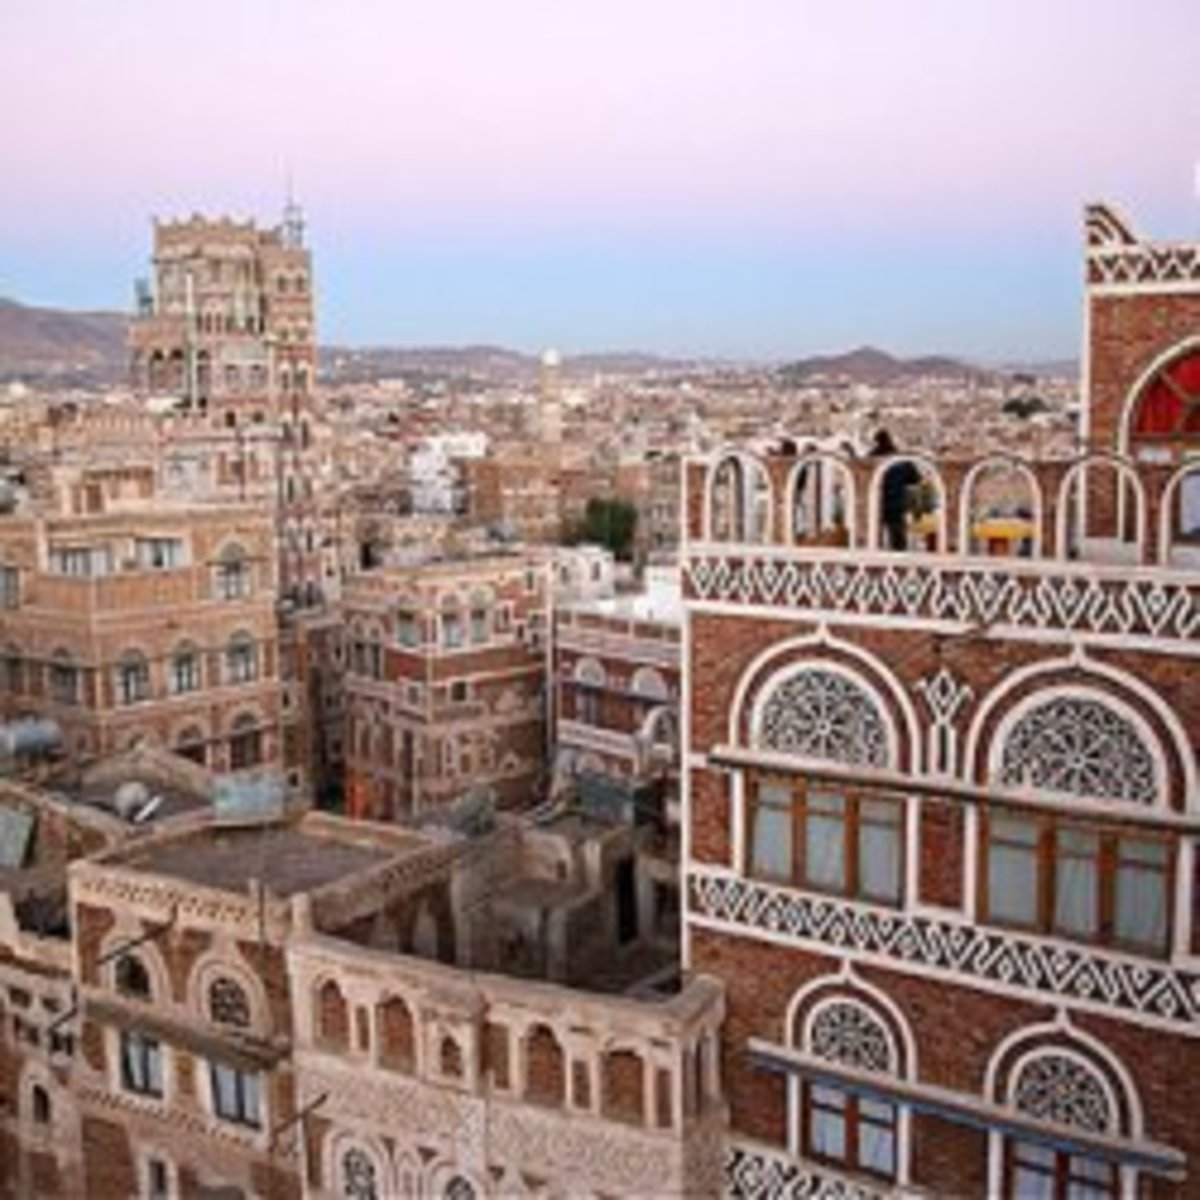 Yemen: Queen of Sheba, Stained Glass Windows, & Ful